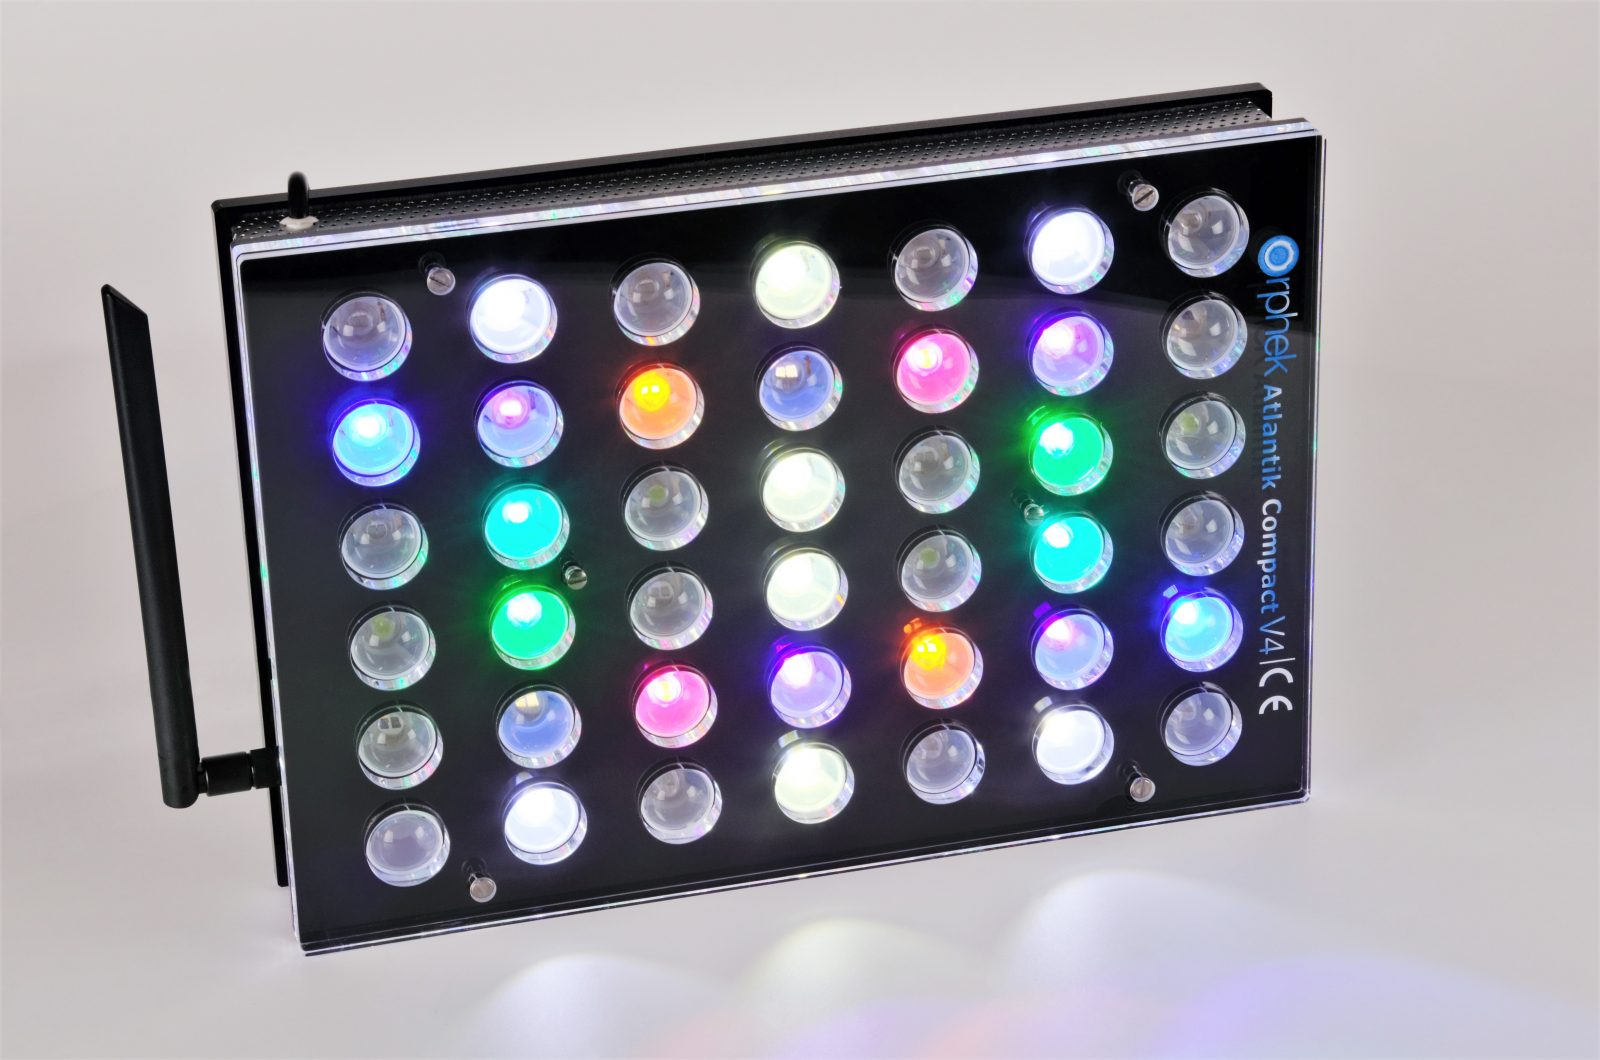 Orphek-Aquarium-LED-Lighting-Atlantik -Compact-V4-licht -on-kanaal 1 + 3 + 4